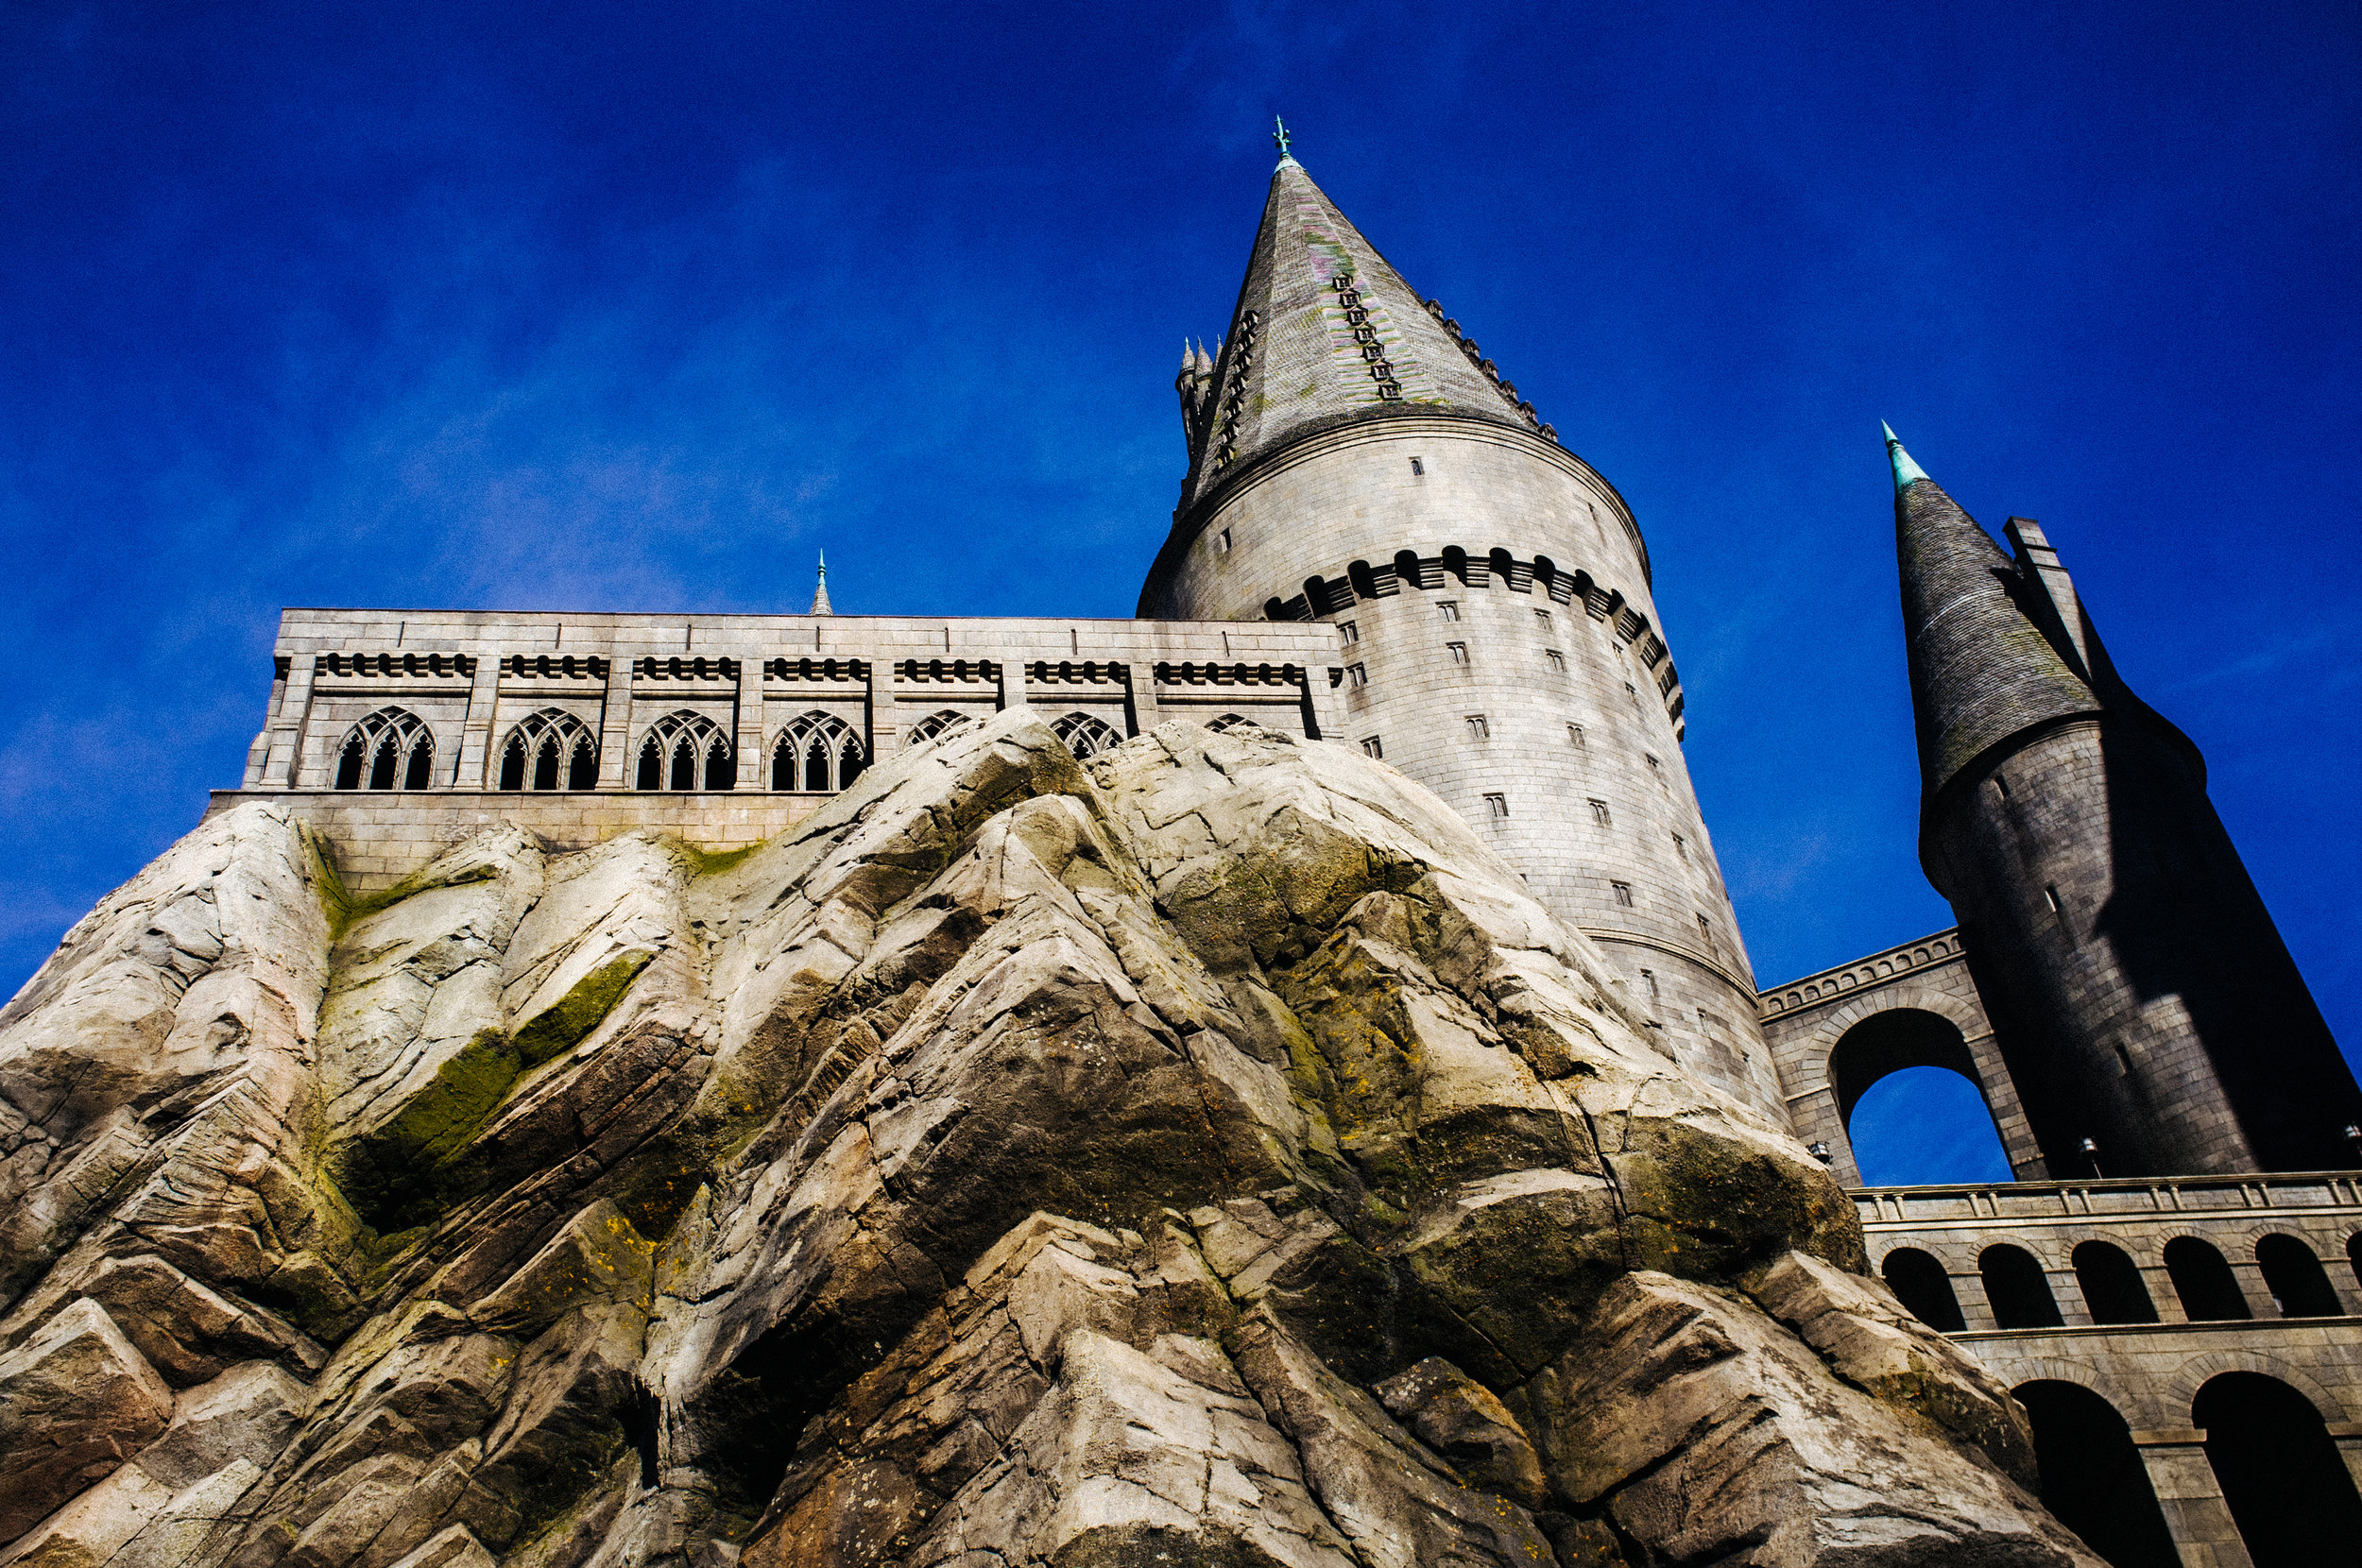 "My photo entitled ""Hogwarts"" was excepted into the PrintSwap on August 9th 2017   International photographers of all backgrounds are invited to participate in  The Print Swap , a project of  Feature Shoot . Primarily run on Instagram, The Print Swap is an opportunity for photographers to collect amazing photography and engage with other photographers around the globe. Photographers who are selected will both give and receive a print."